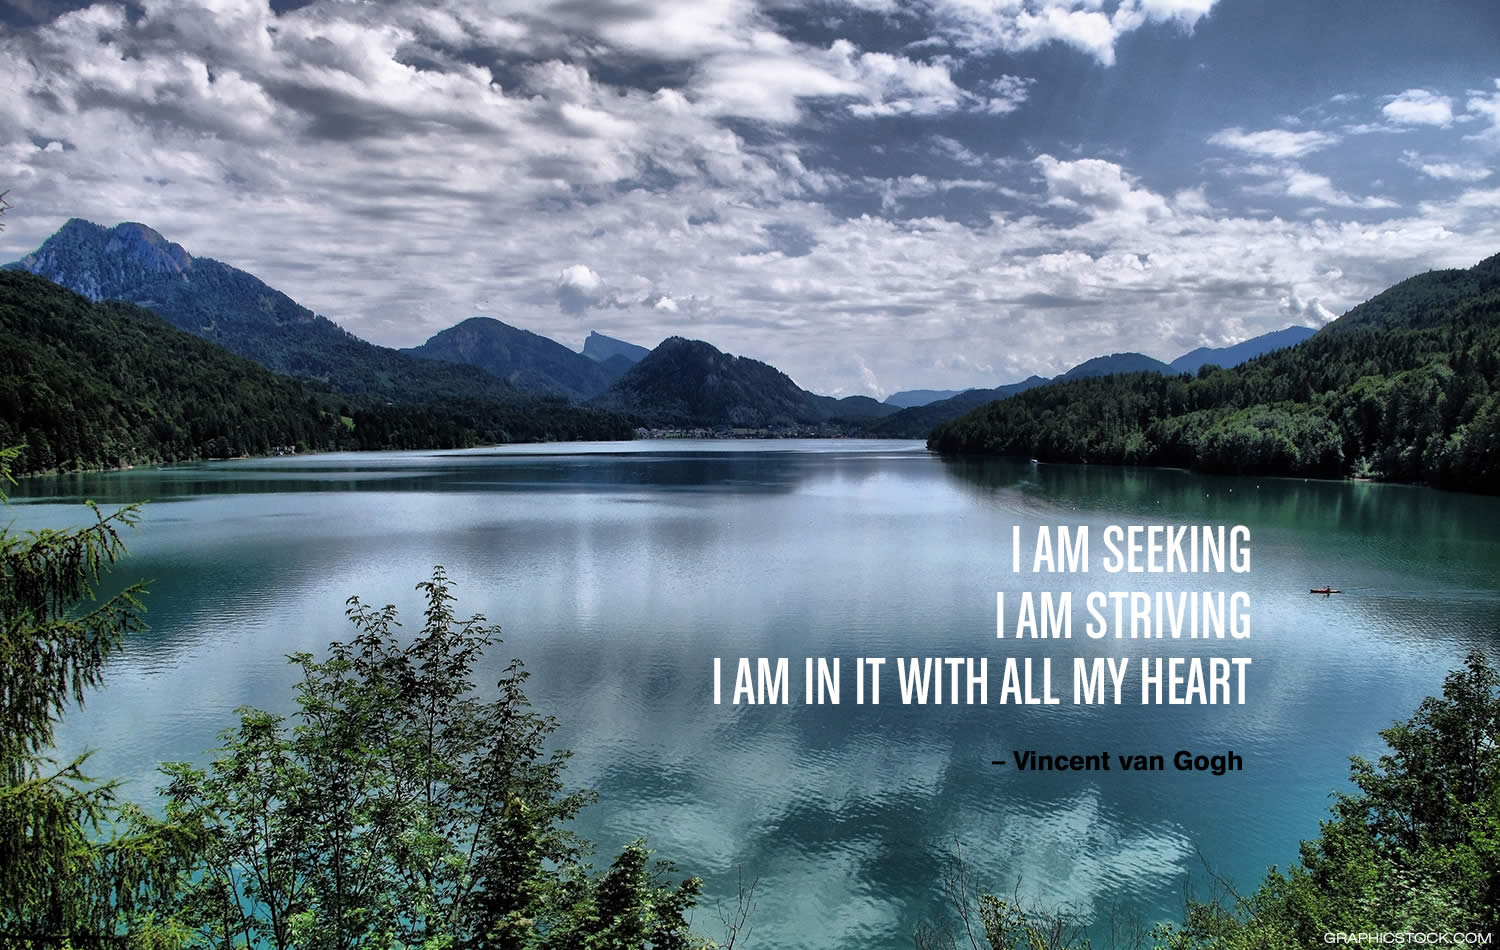 """I am seeking. I am striving. I am in it with all my heart."" –Vincent van Gogh"